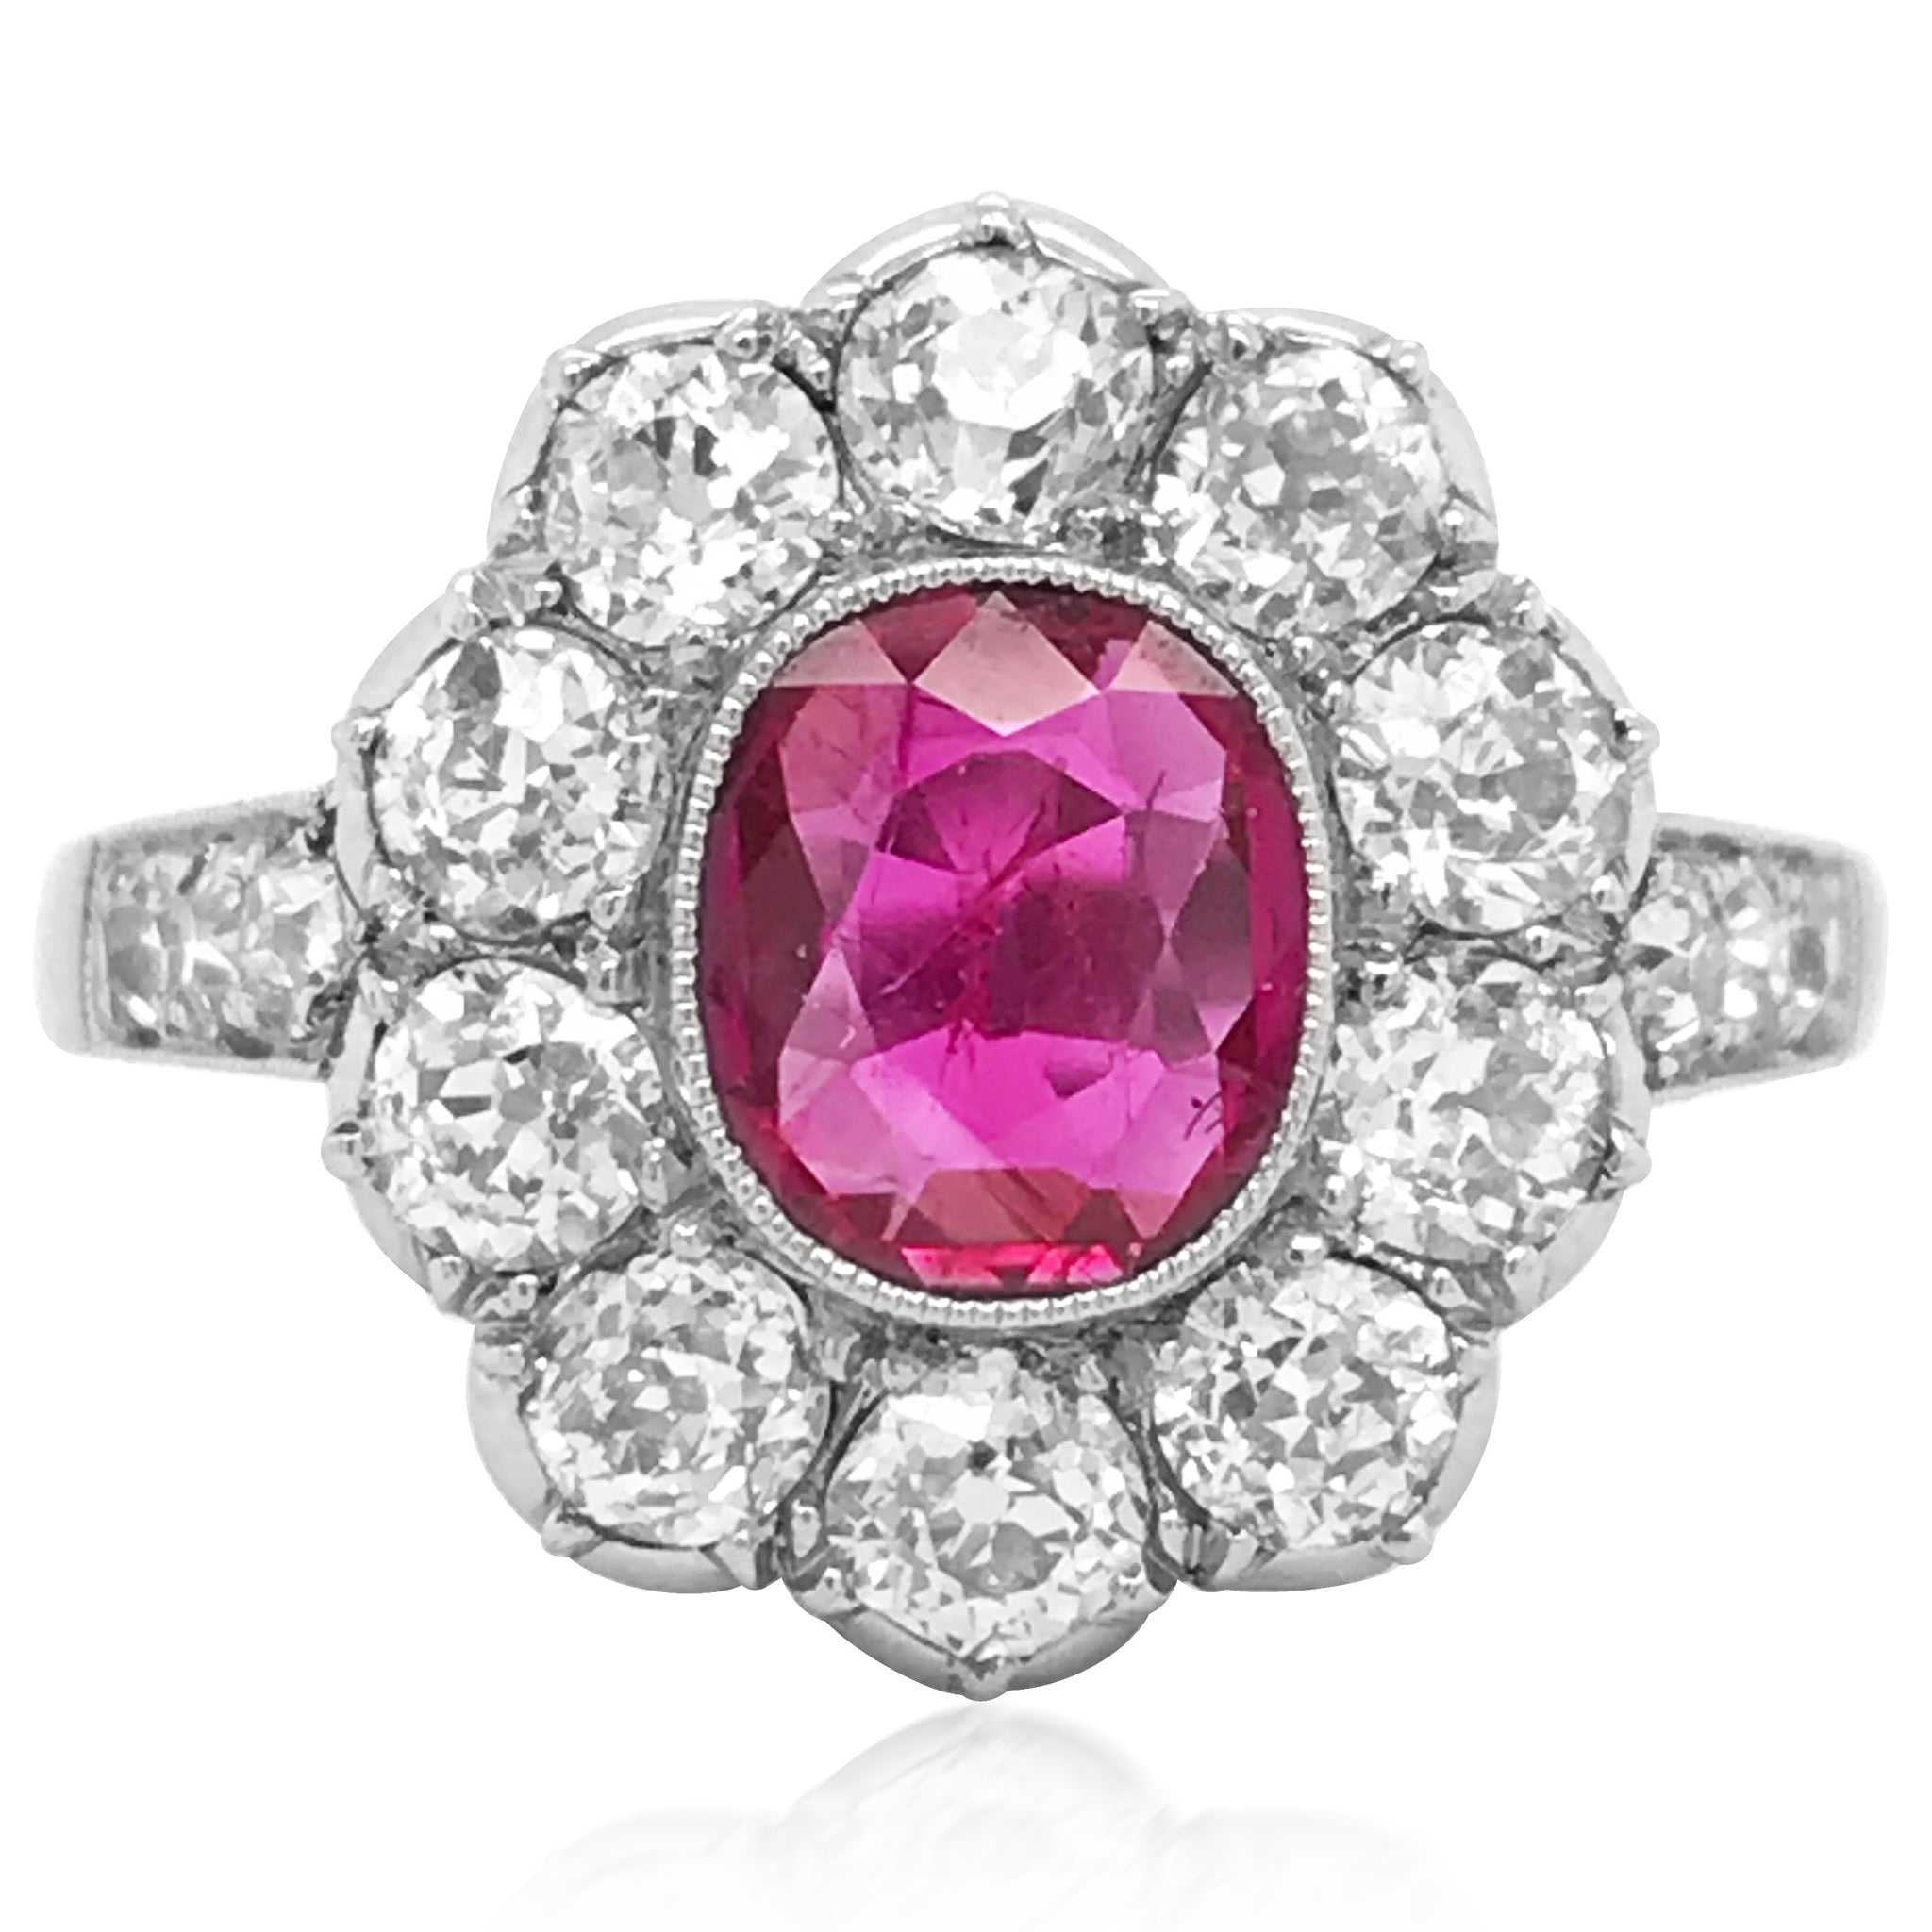 Unheated Burma Ruby and Diamond 18K Gold Ring, AGL - Lueur Jewelry